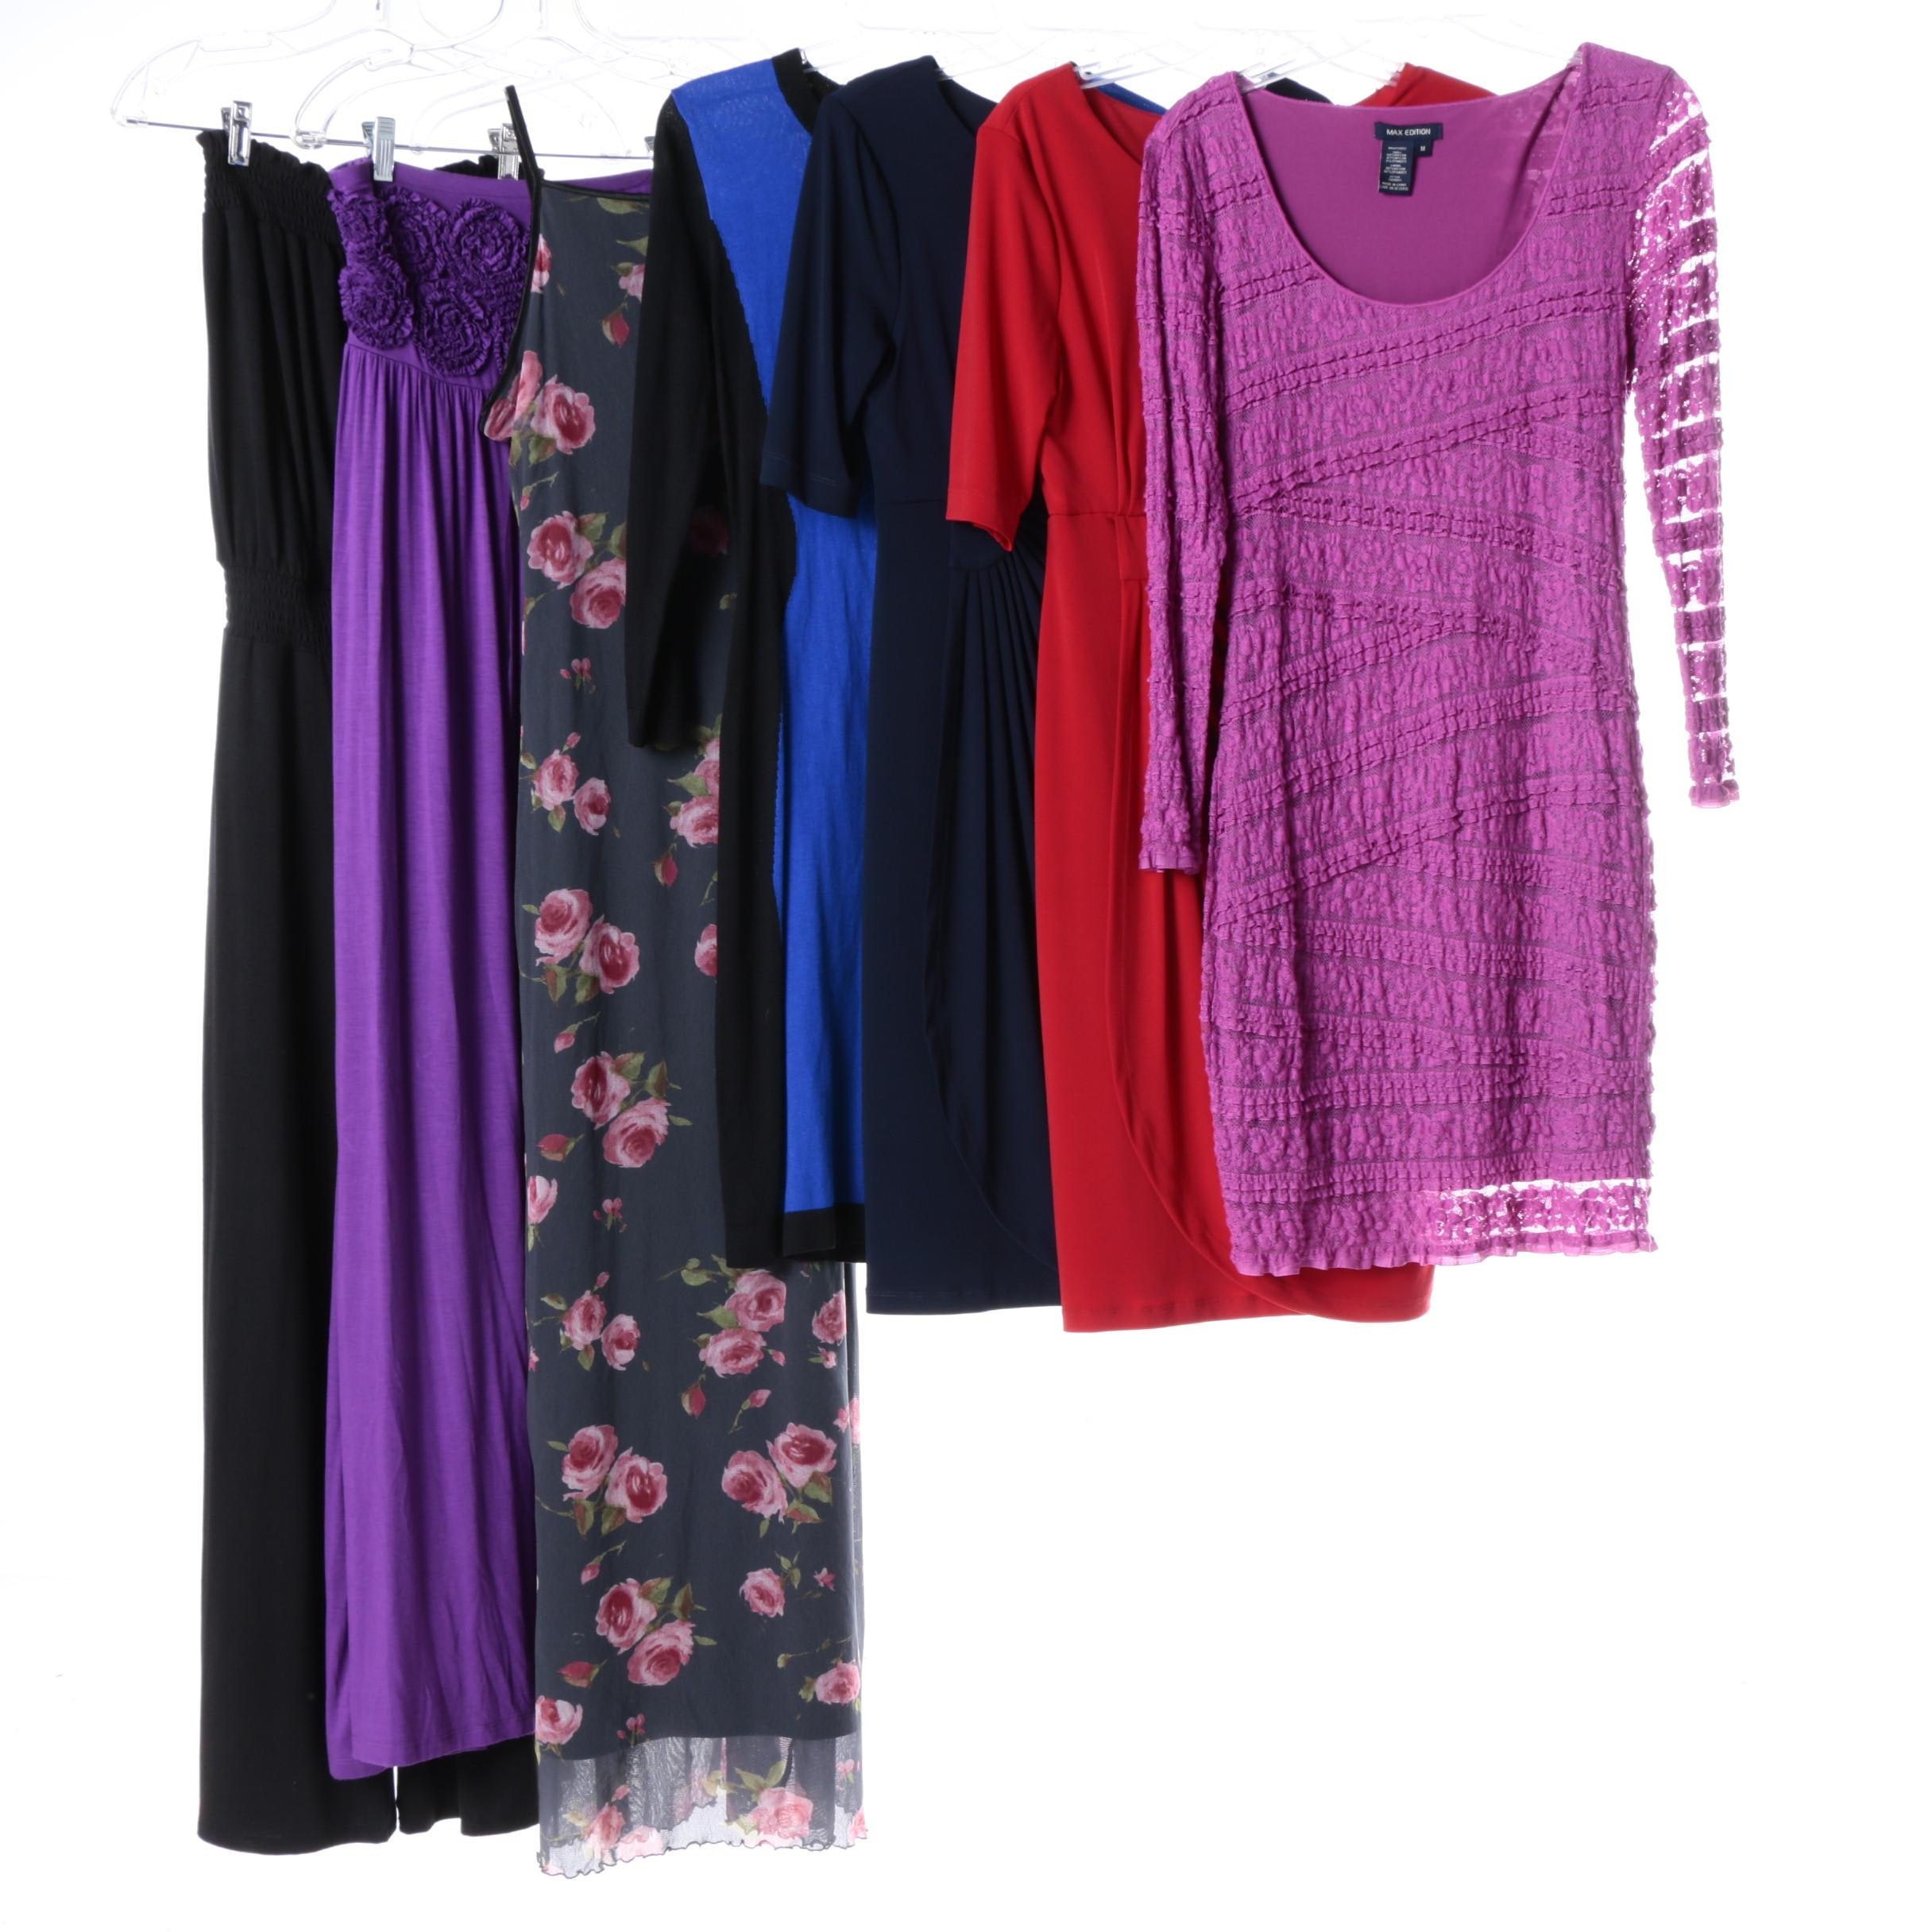 Women's Dresses Including Connected